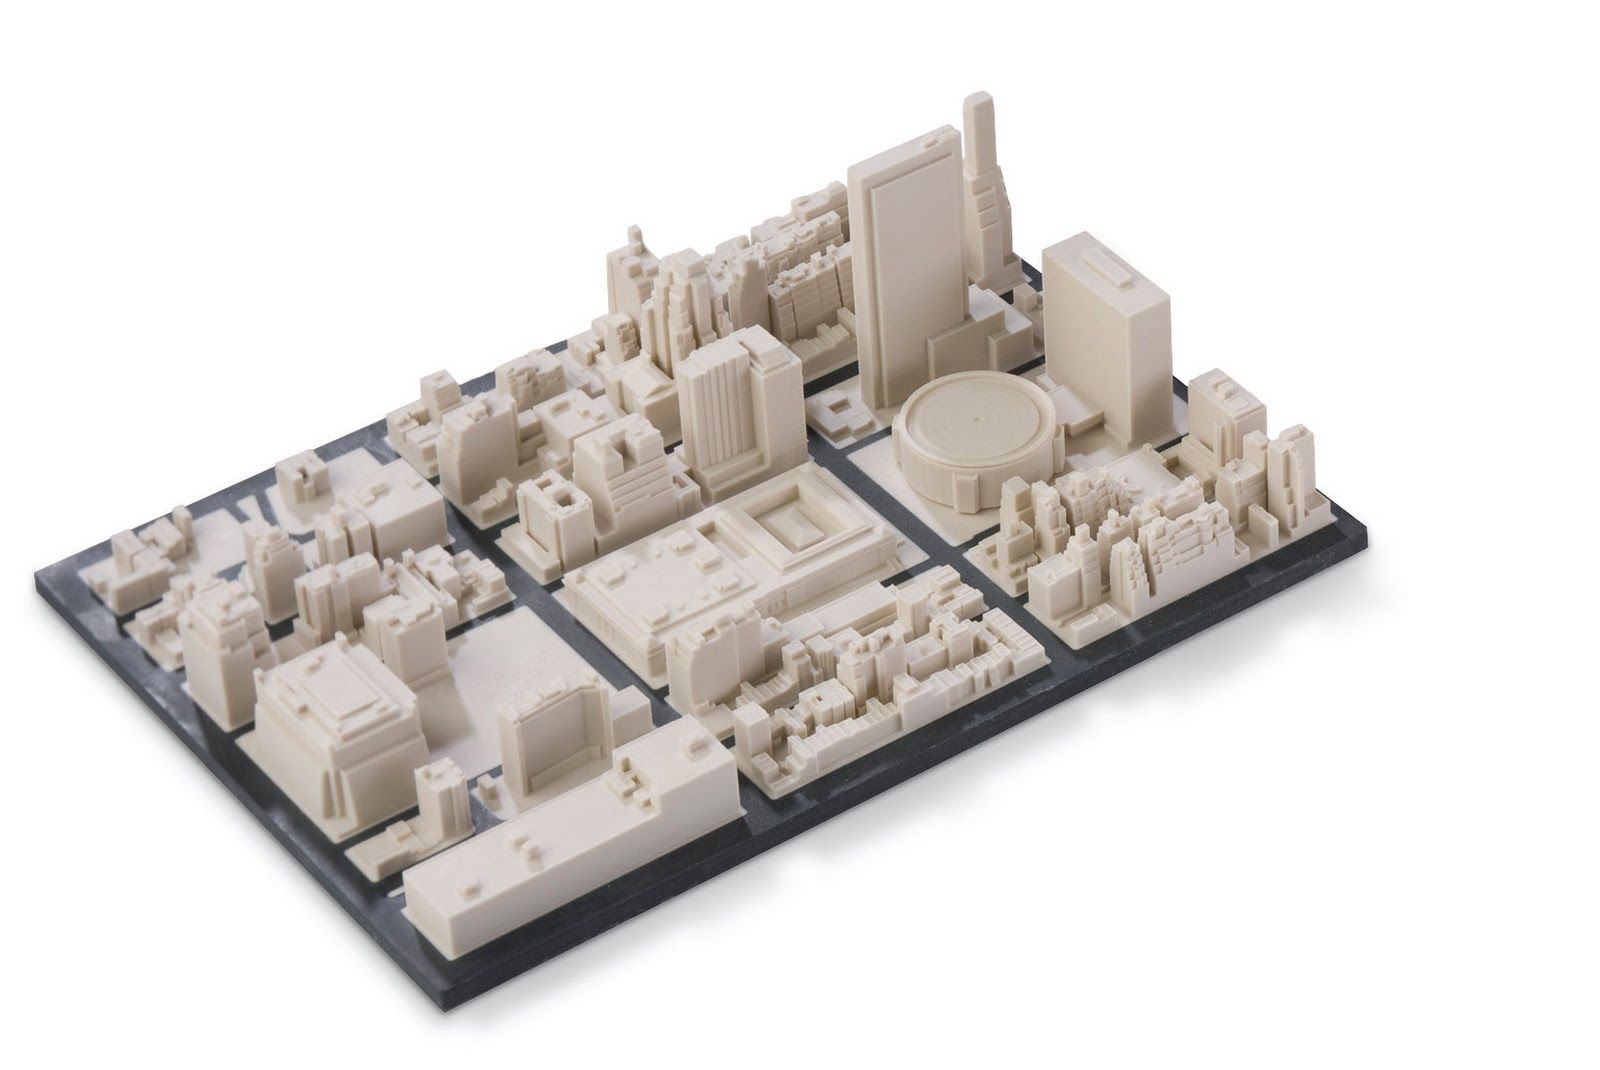 3d printed building models the image for 3d printed house model